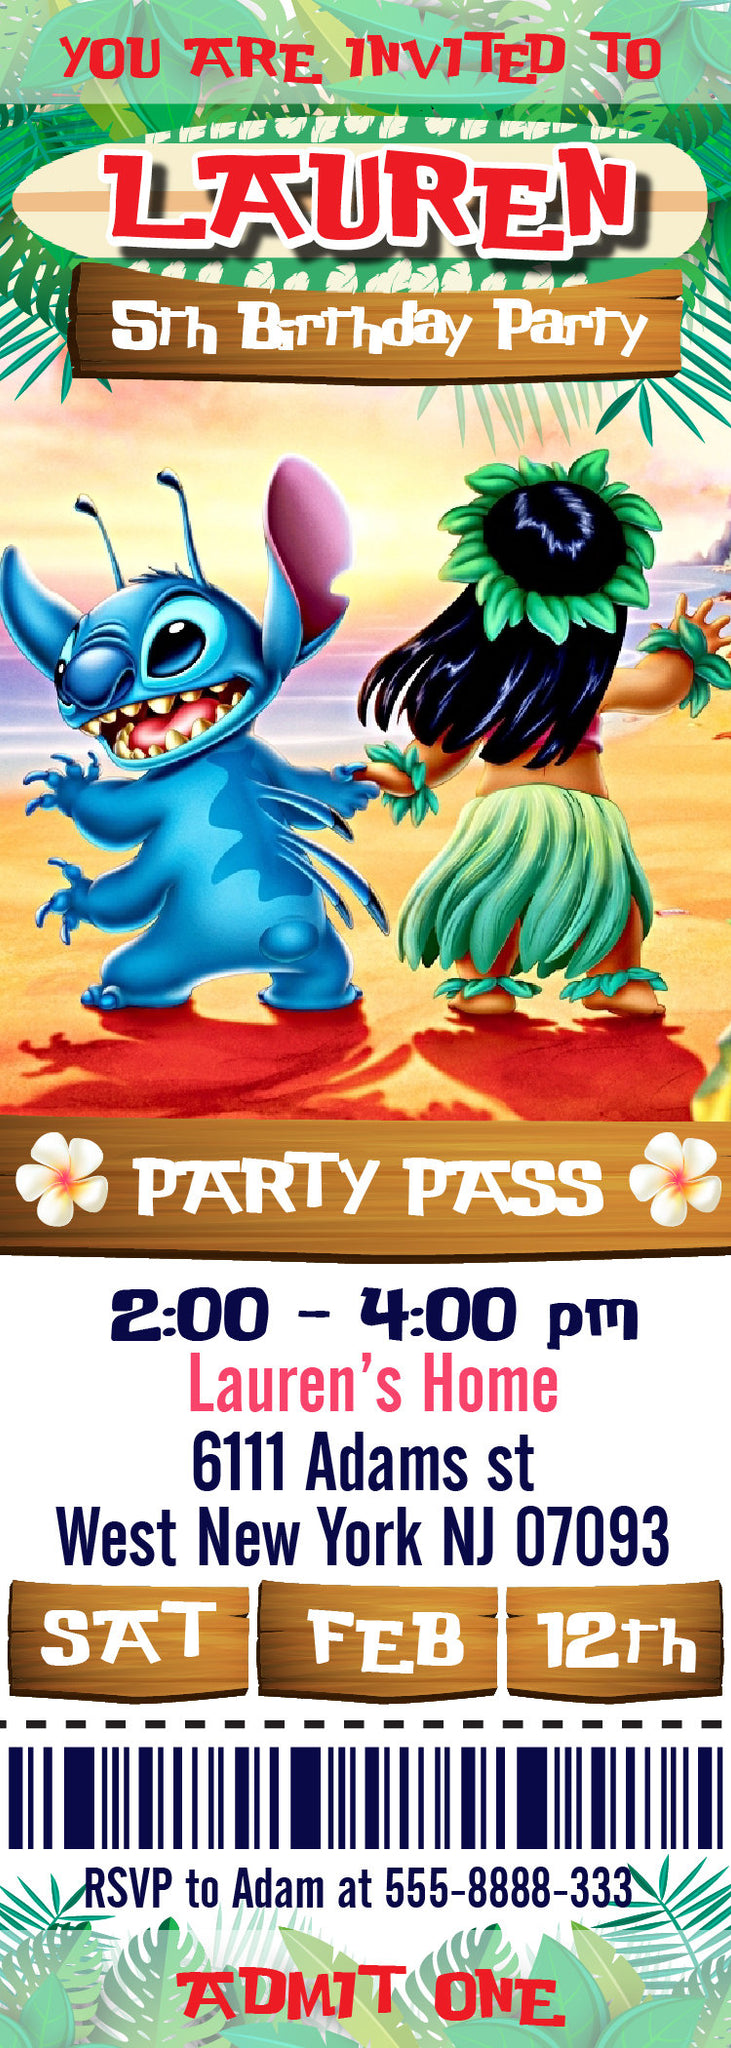 Lilo And Stitch Invitation, Lilo And Stitch Birthday, Lilo. Chef John Folse Culinary Institute. American Express Credit Card For Students. Dish Network Hd Channel List. Information Technology Certification. Managing Personal Debt Decatur Dekalb Storage. Sales Force Crm Software Insurance Sr22 Cost. Online Consumer Surveys B&w M1 Speaker Stands. Pitney Bowes Competition Mooney Family Dental